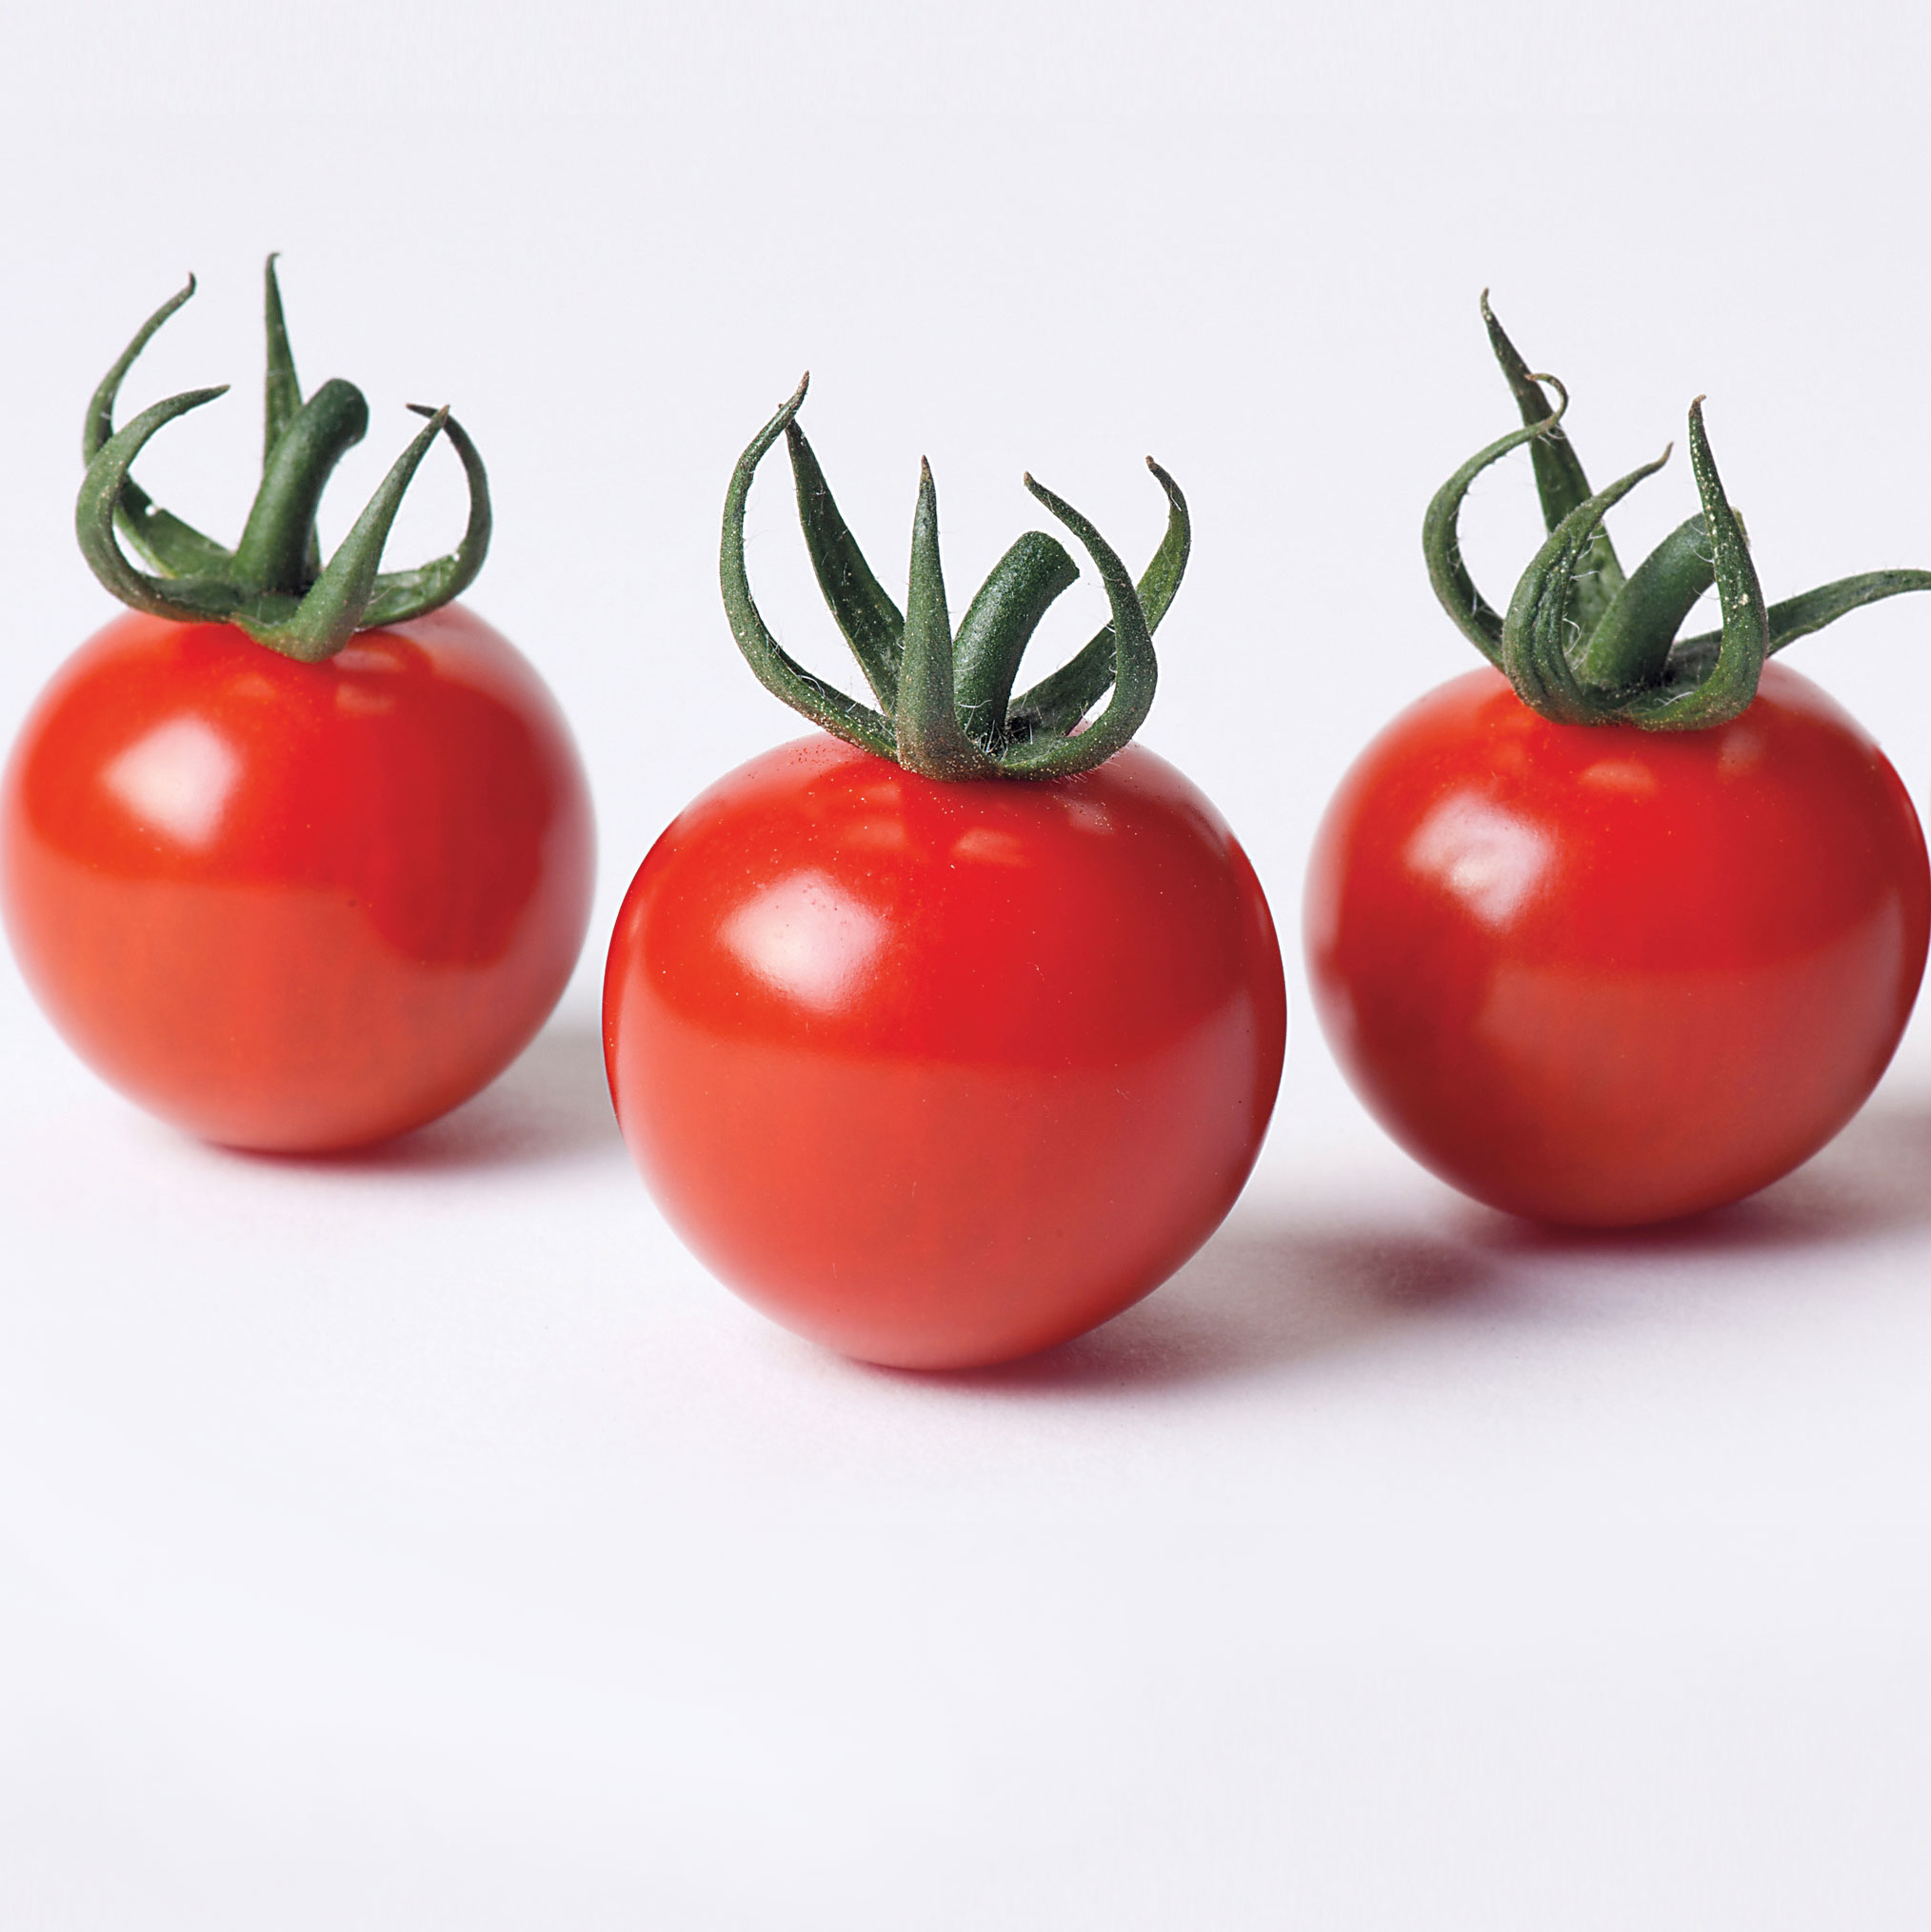 Terms of sowing tomatoes